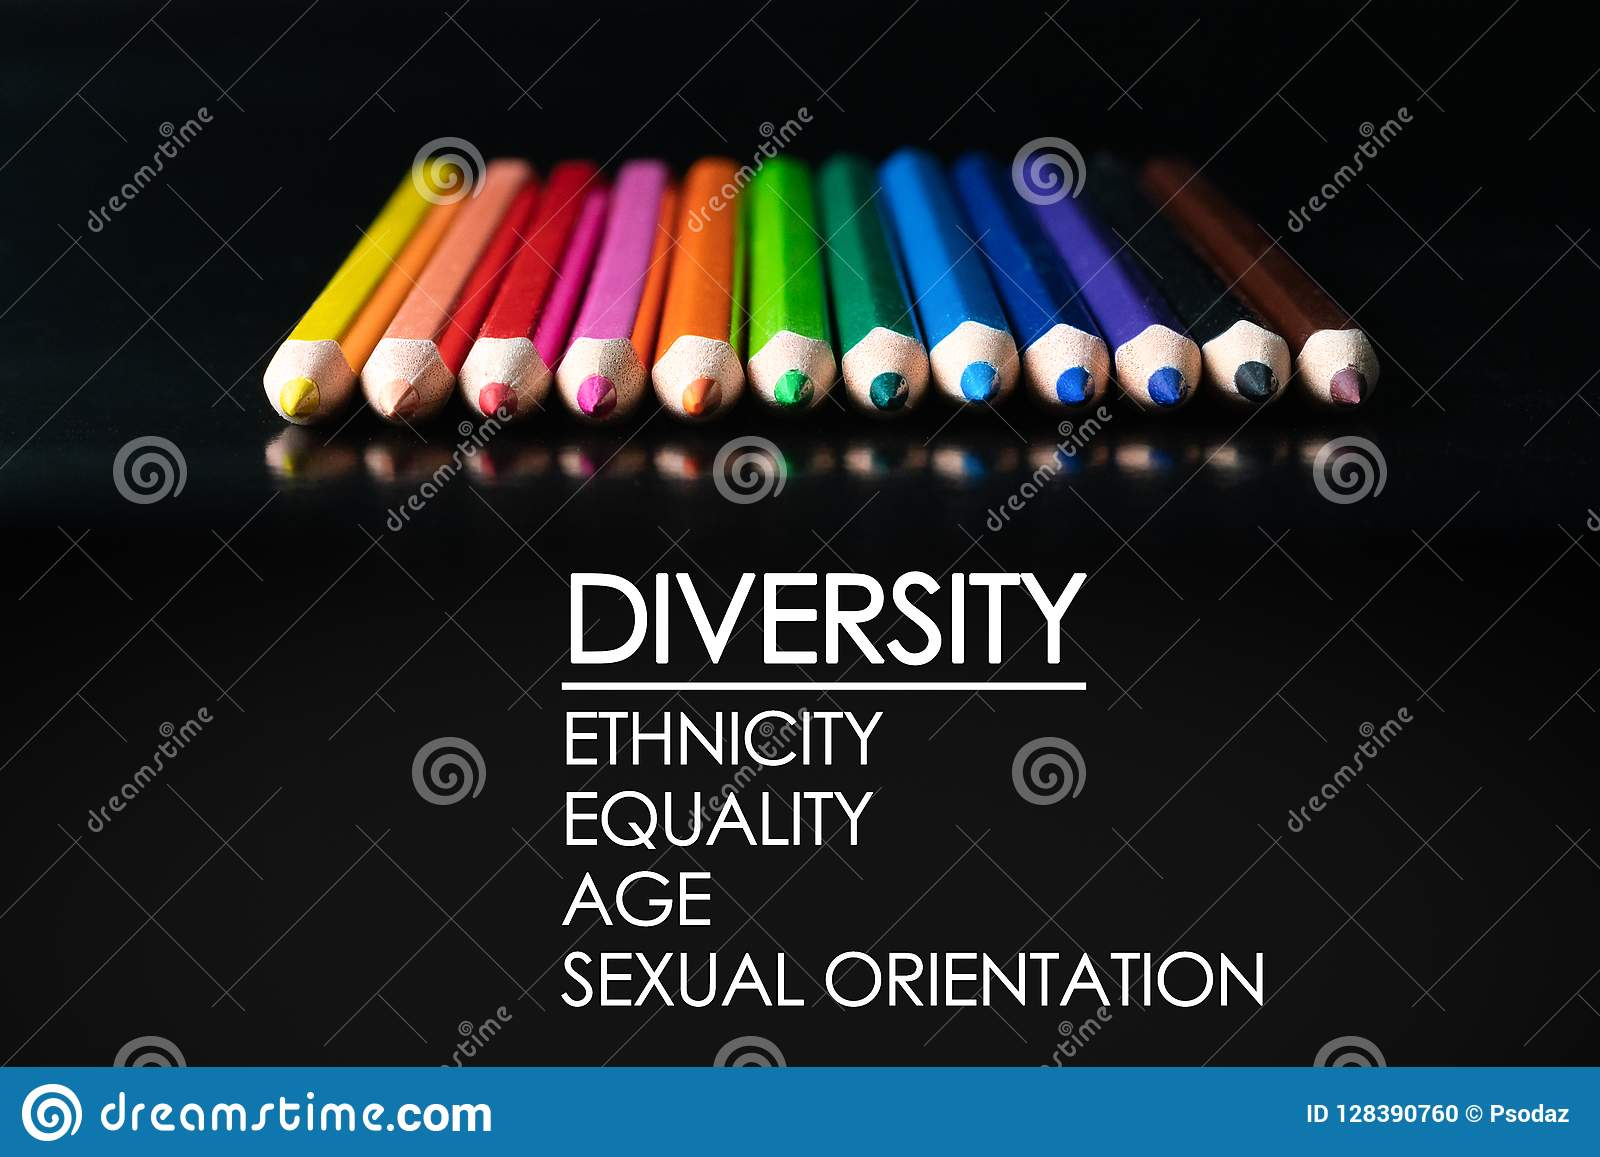 Diversity concept. row of mix color pencil on black background with text Diversity, Ethnicity, Equality, Age, Sexual Orientation